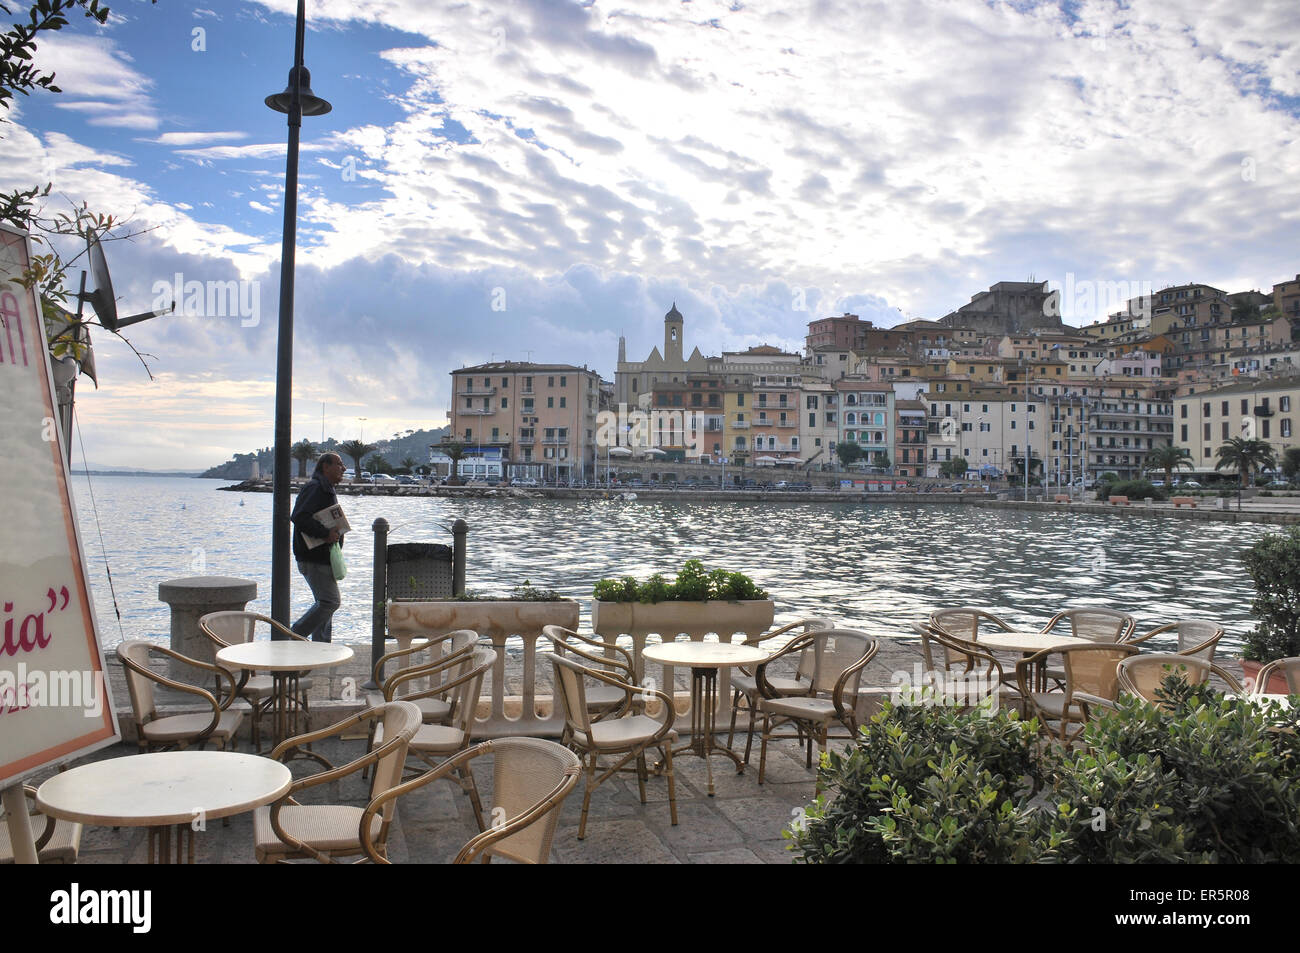 Cafe in the harbour of Porto Santo Stefano at Monte Argentario, South Tuscany, Tuscany, Italy - Stock Image